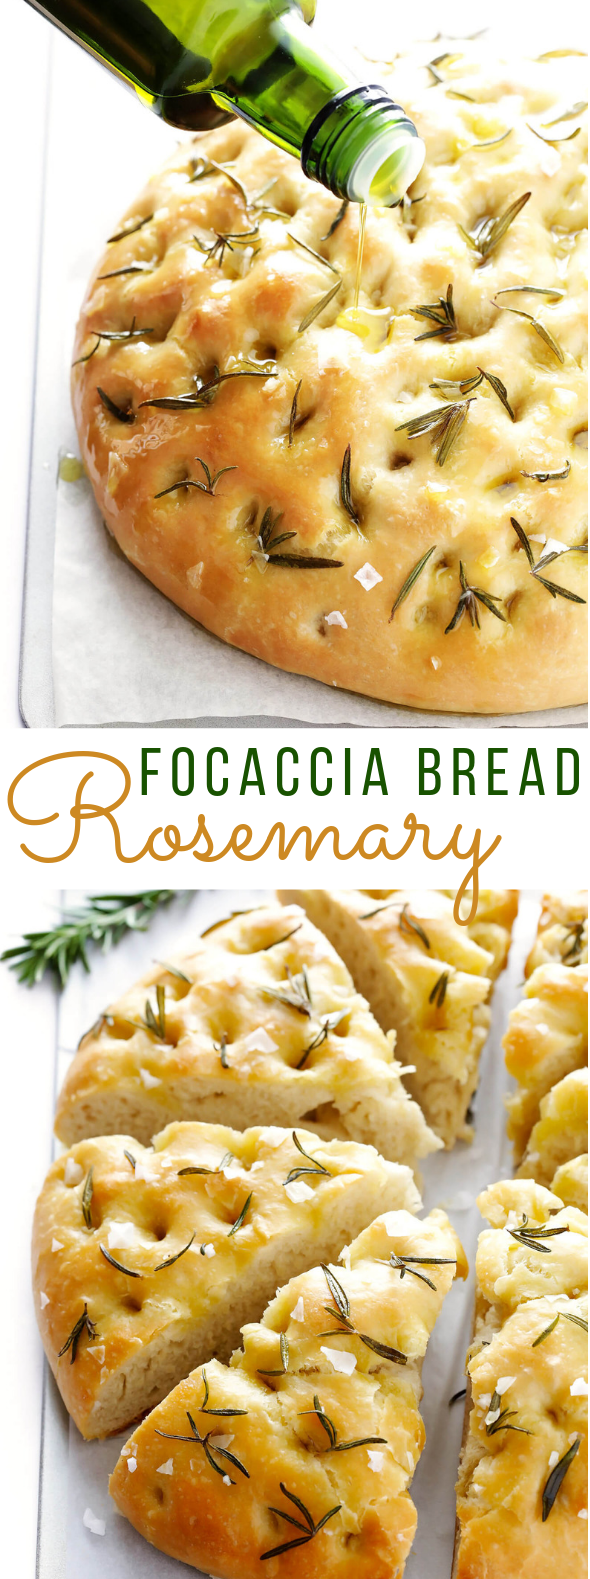 ROSEMARY FOCACCIA BREAD #dinner #food